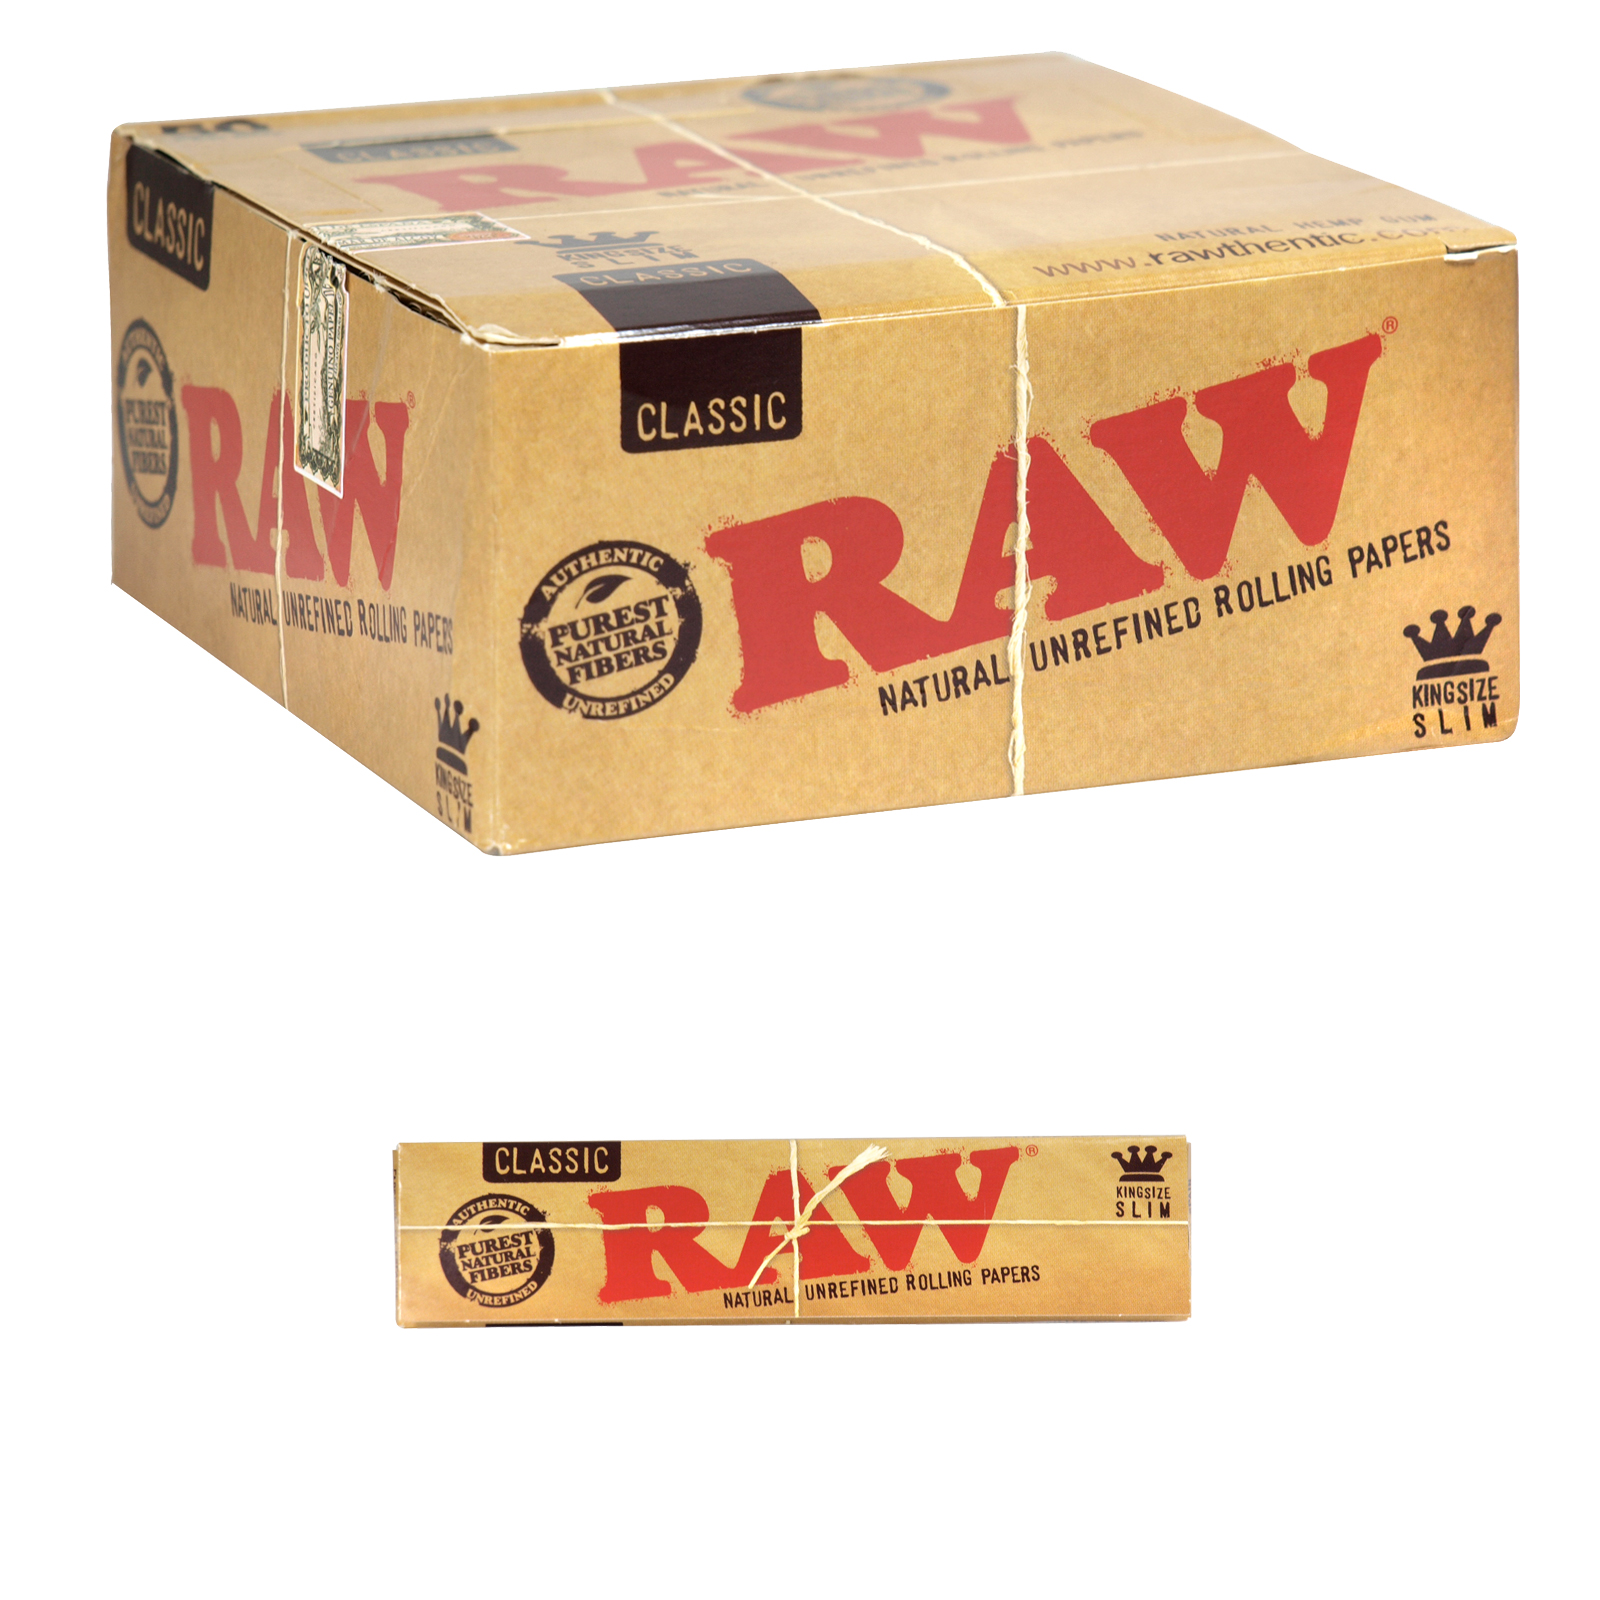 RAW CIGARETTE PAPERS CLASSIC KINGSIZE SLIM 32 LEAVES X50